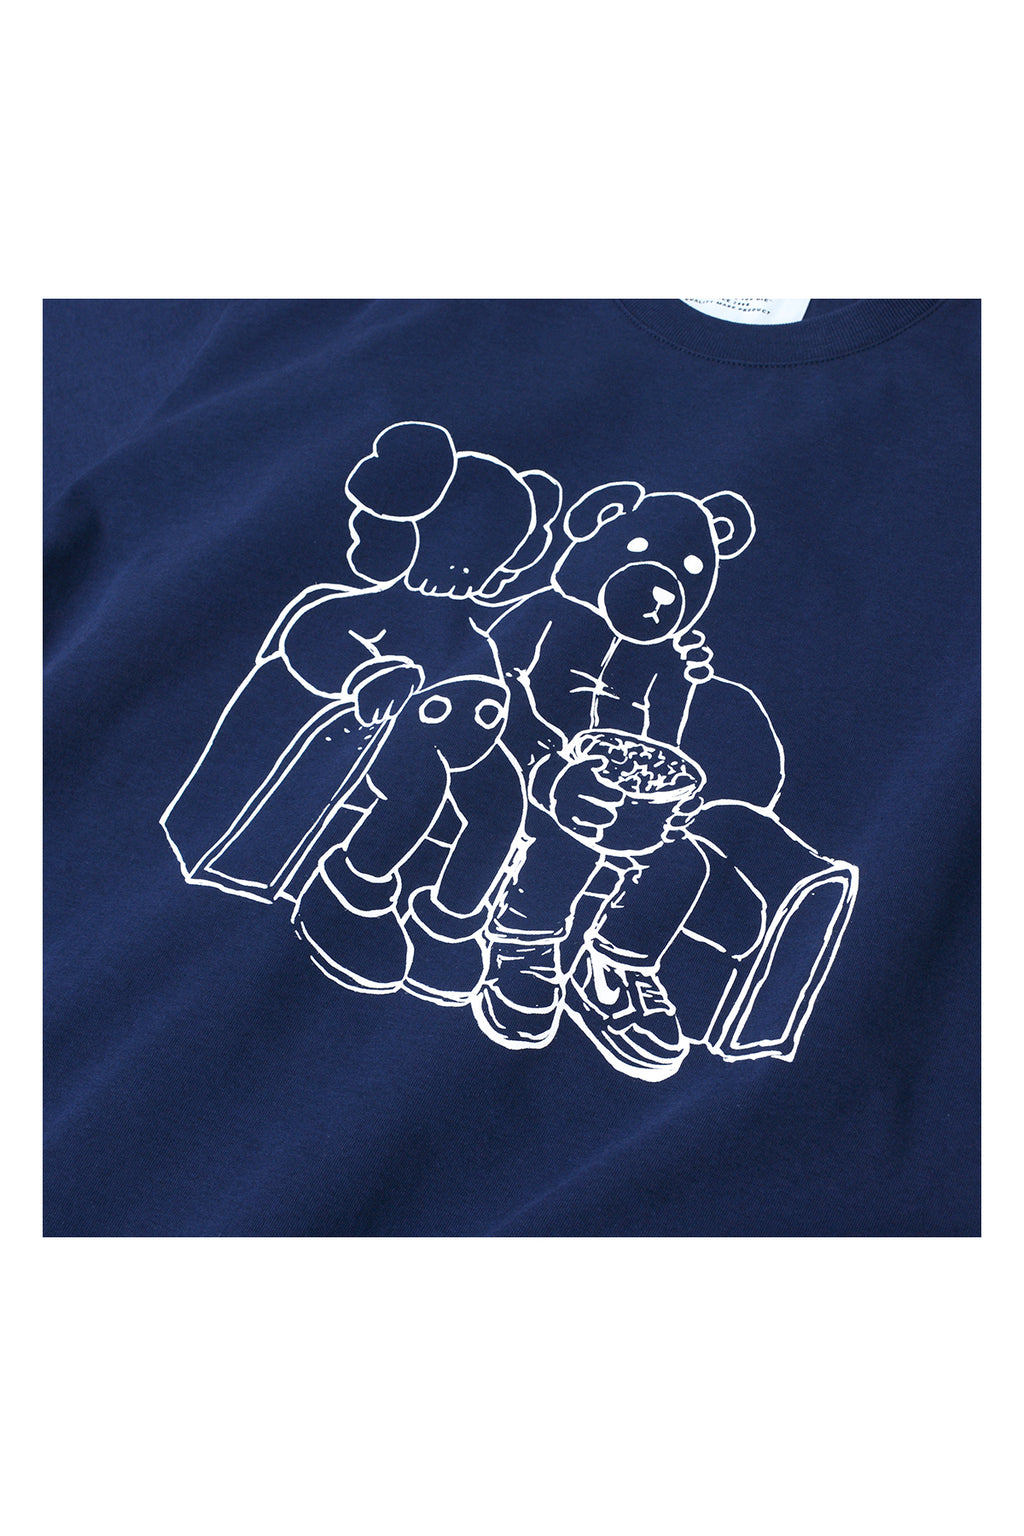 """LUKE, THE BEAR & SOFA"" TEE 